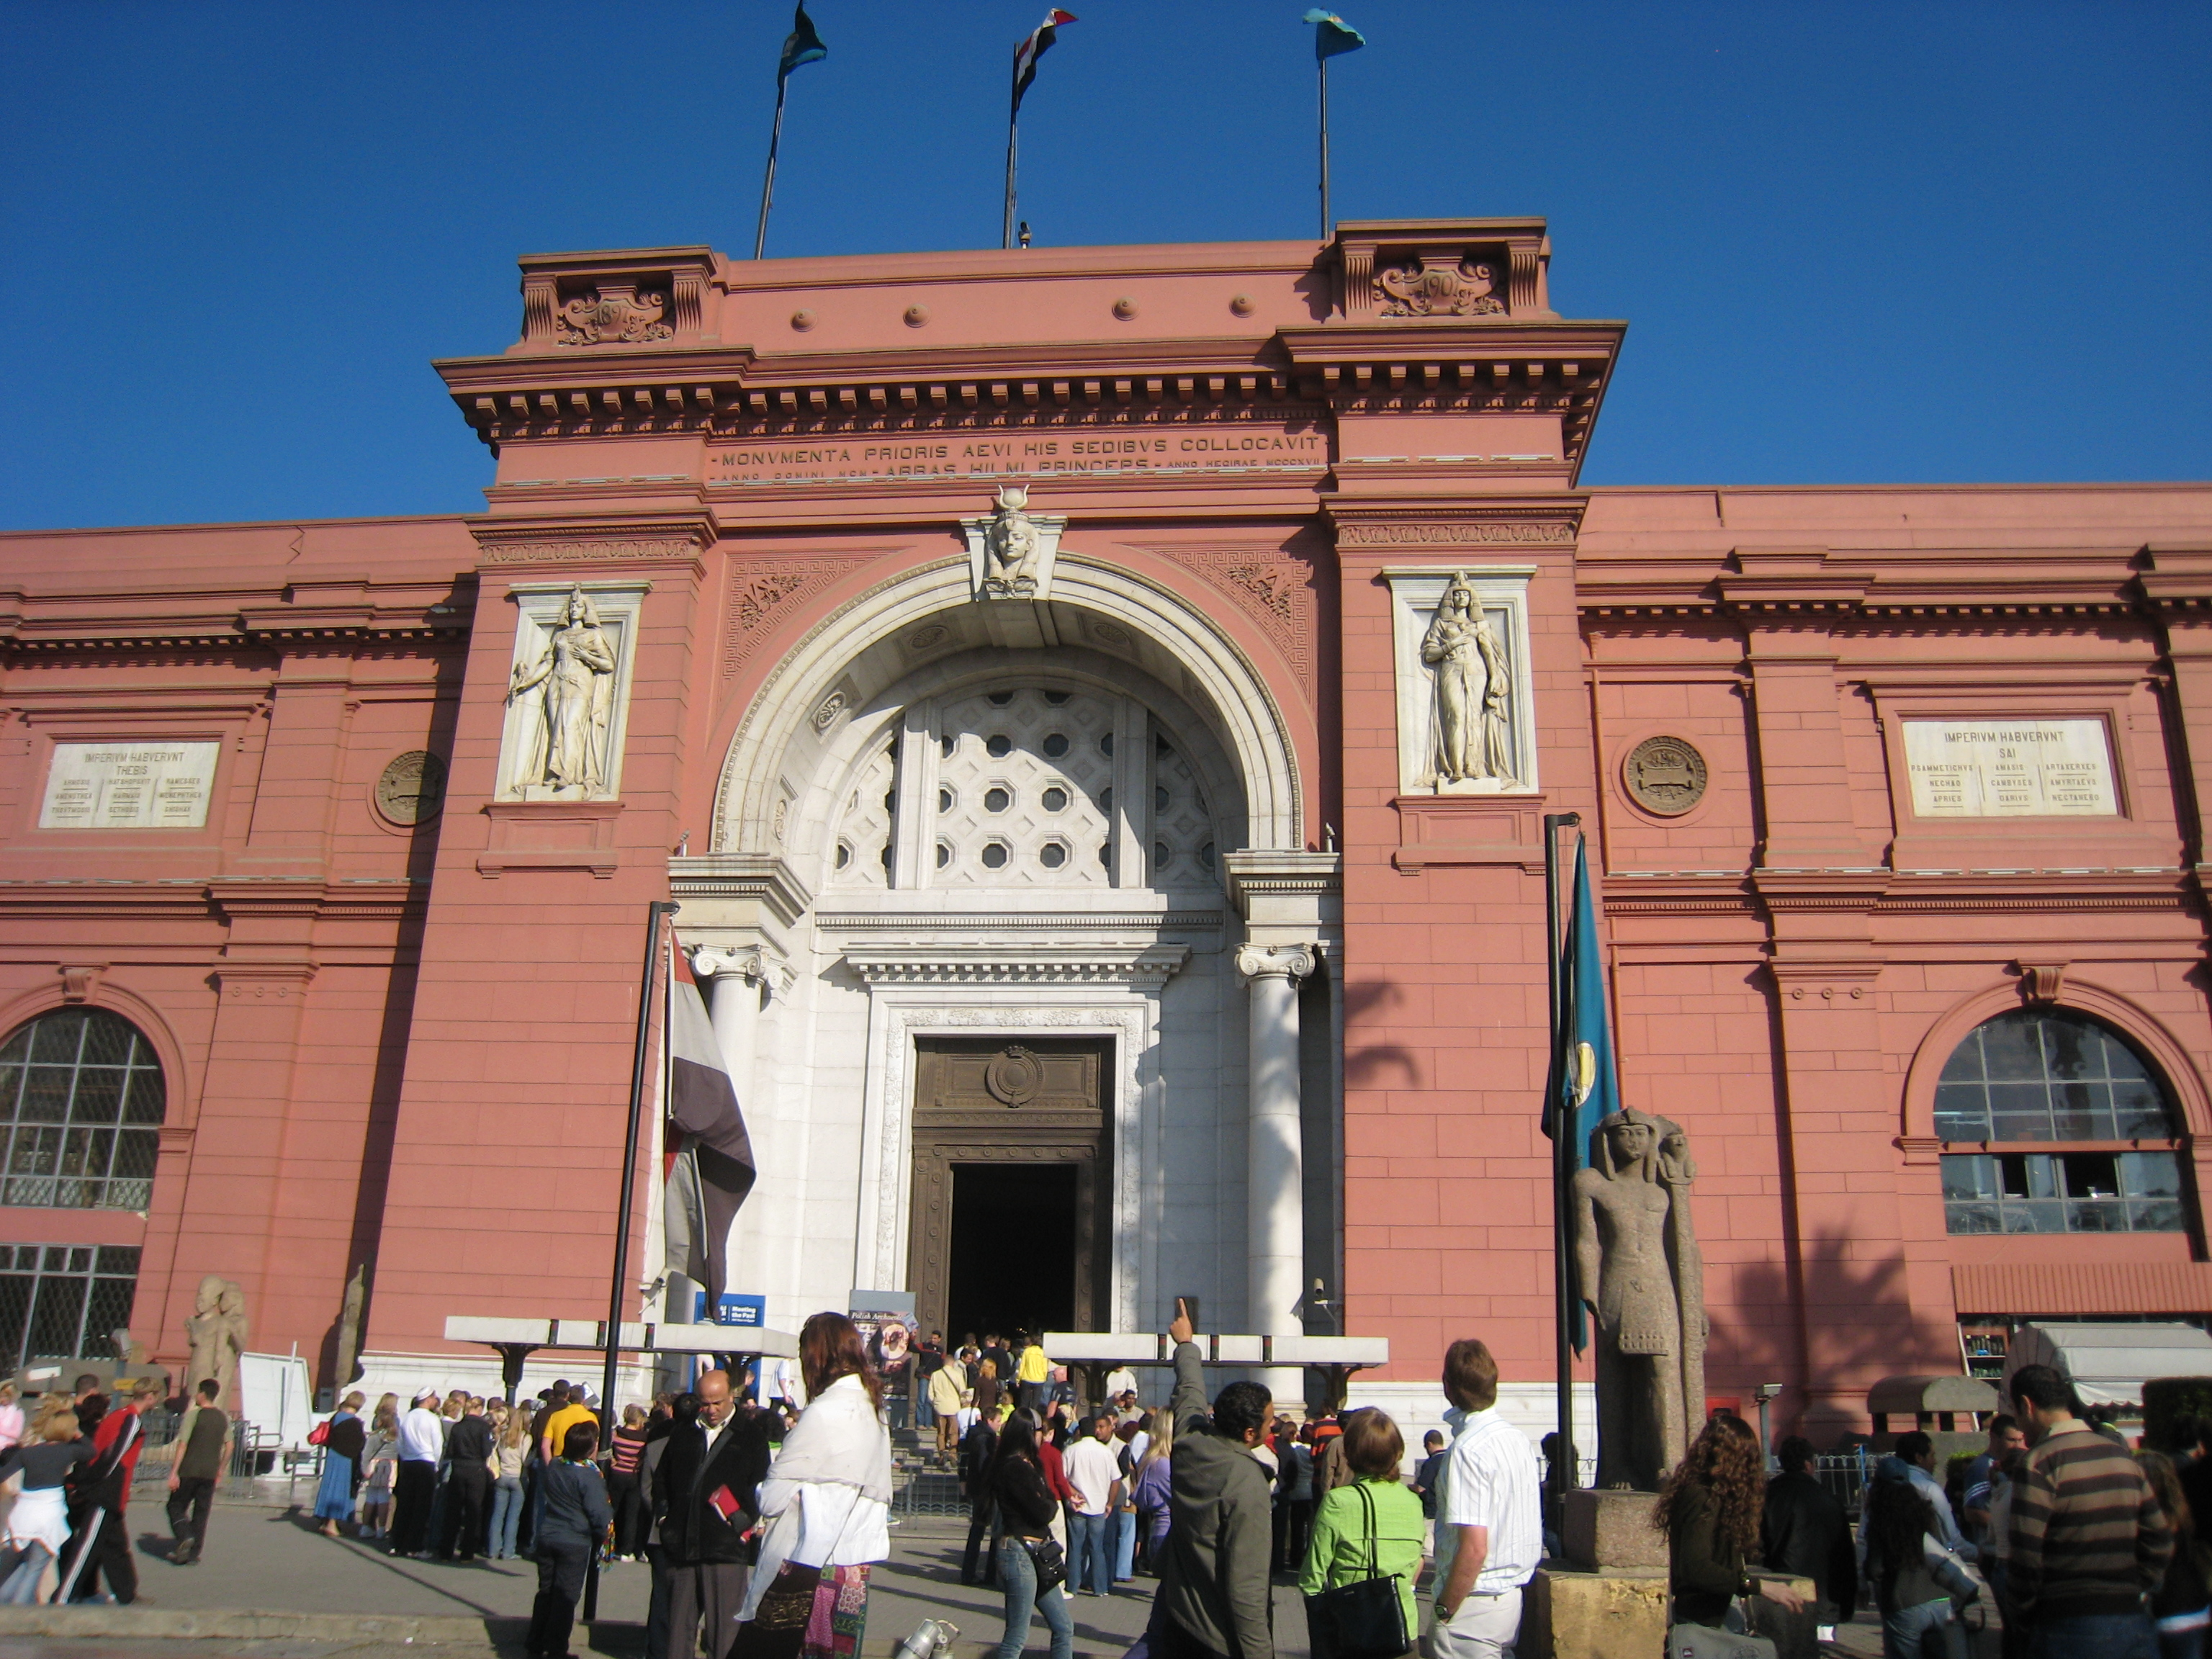 Entrance to Egyptian Museum (Cairo, Egypt)